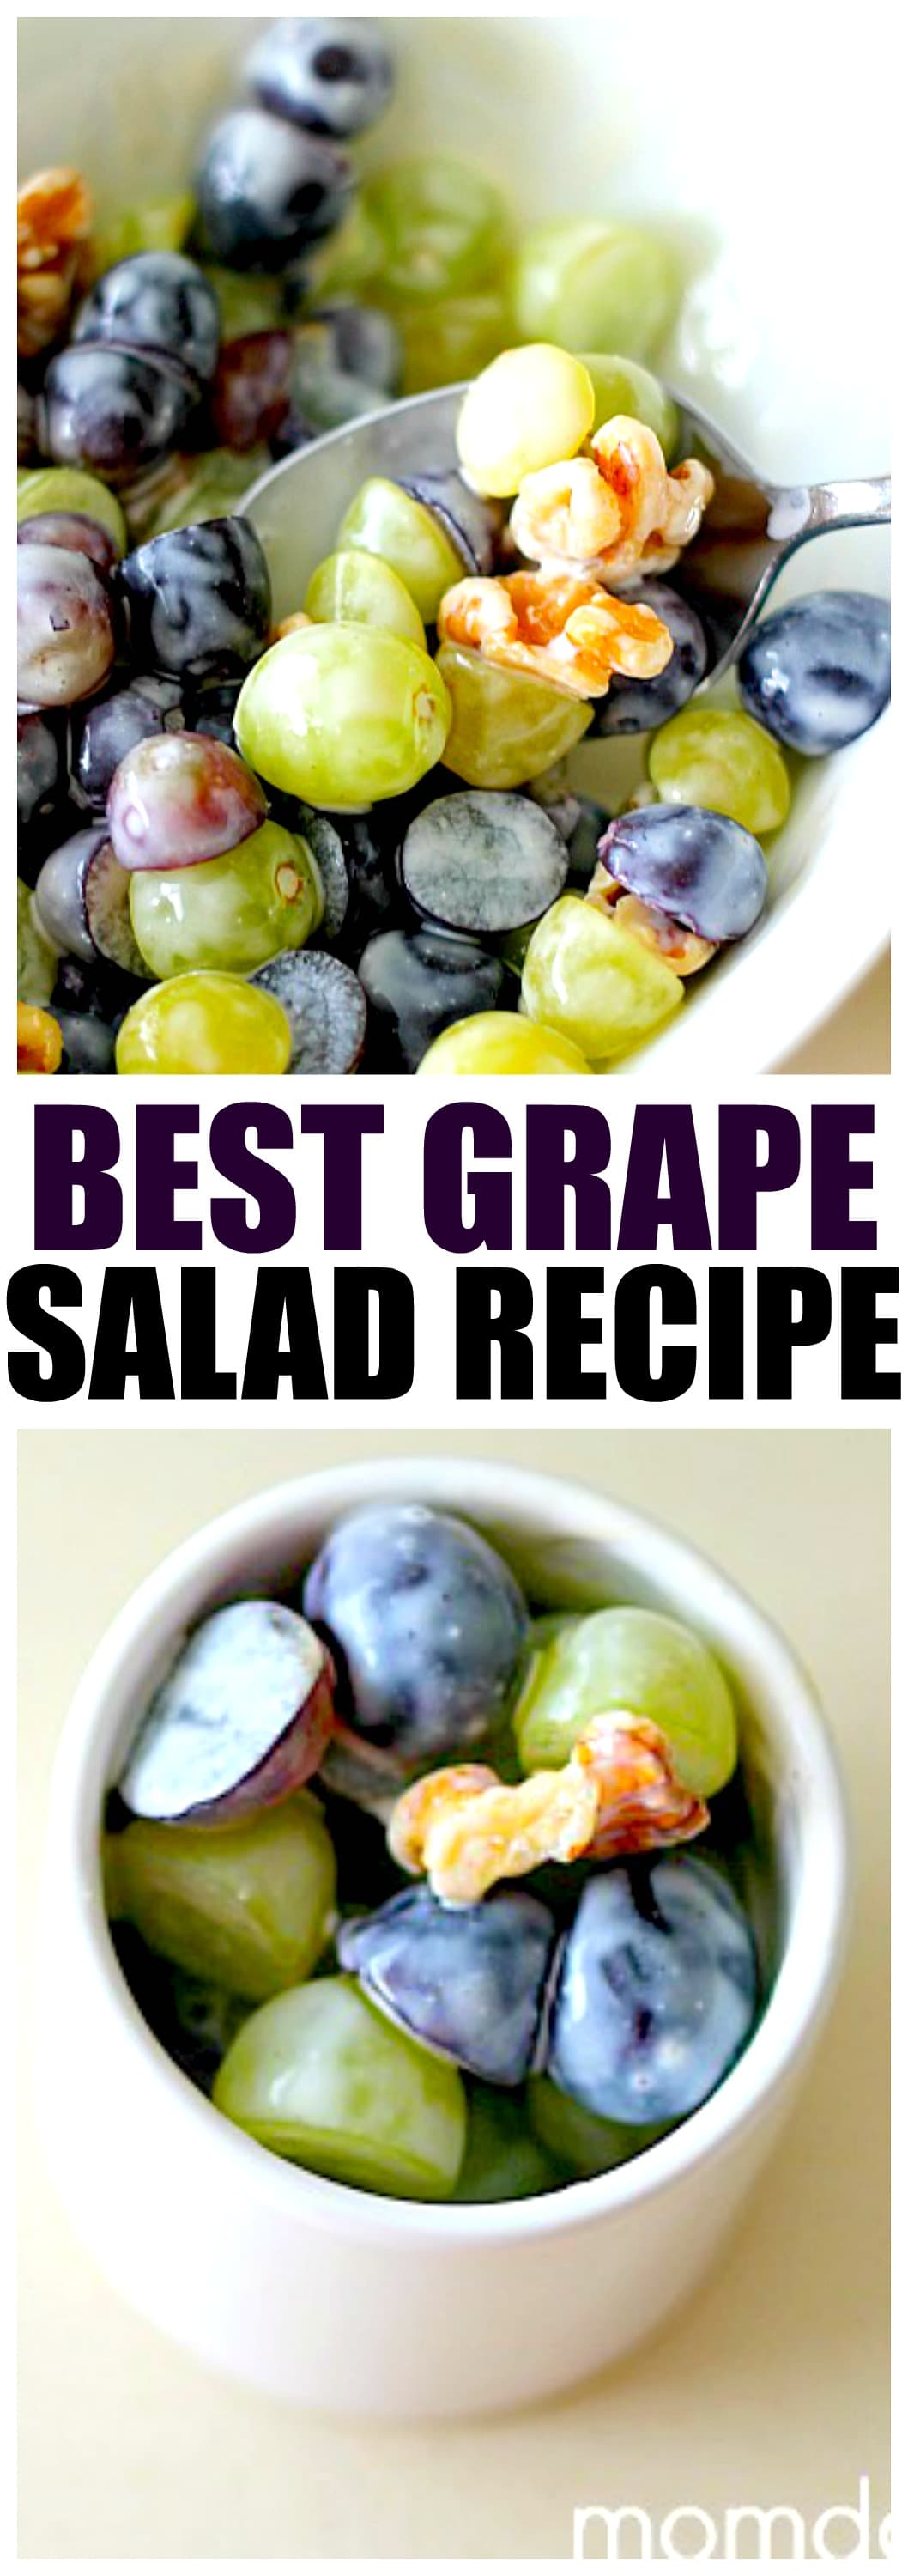 Best Grape Salad Recipe with Crunchy Walnuts, perfect for summer picnics